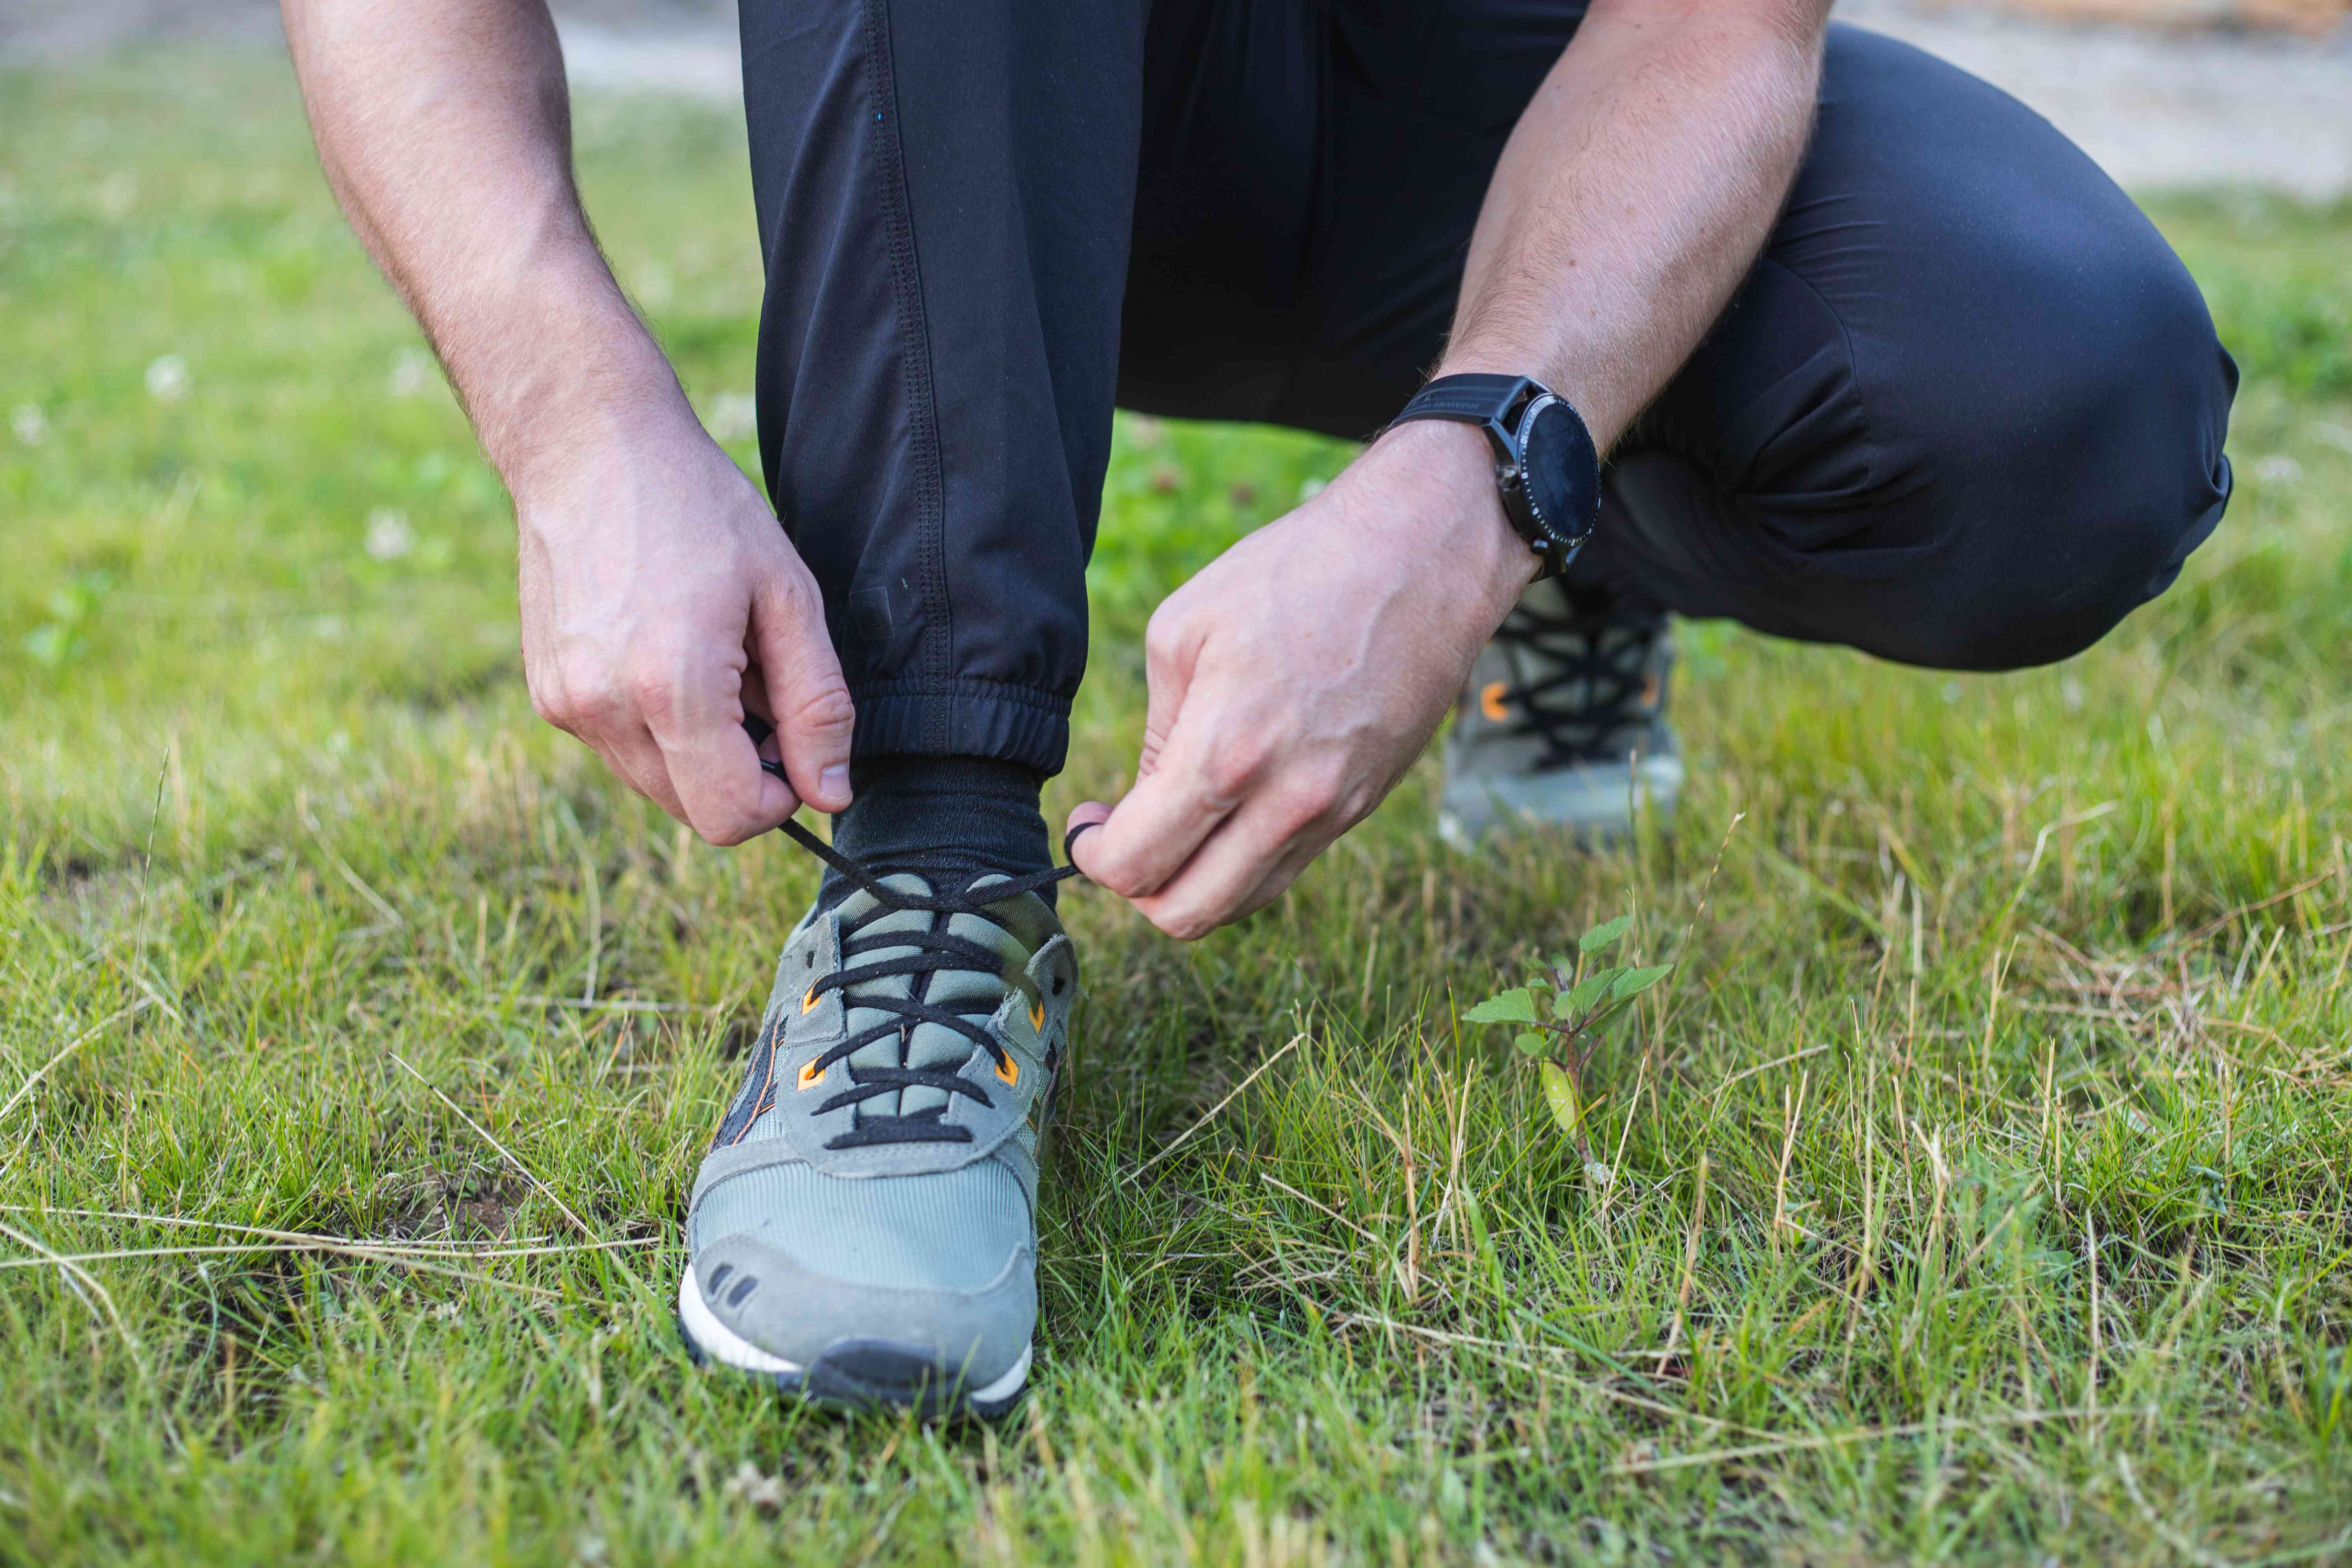 man in workout clothes crouches down to tighten laces on walking running shoes